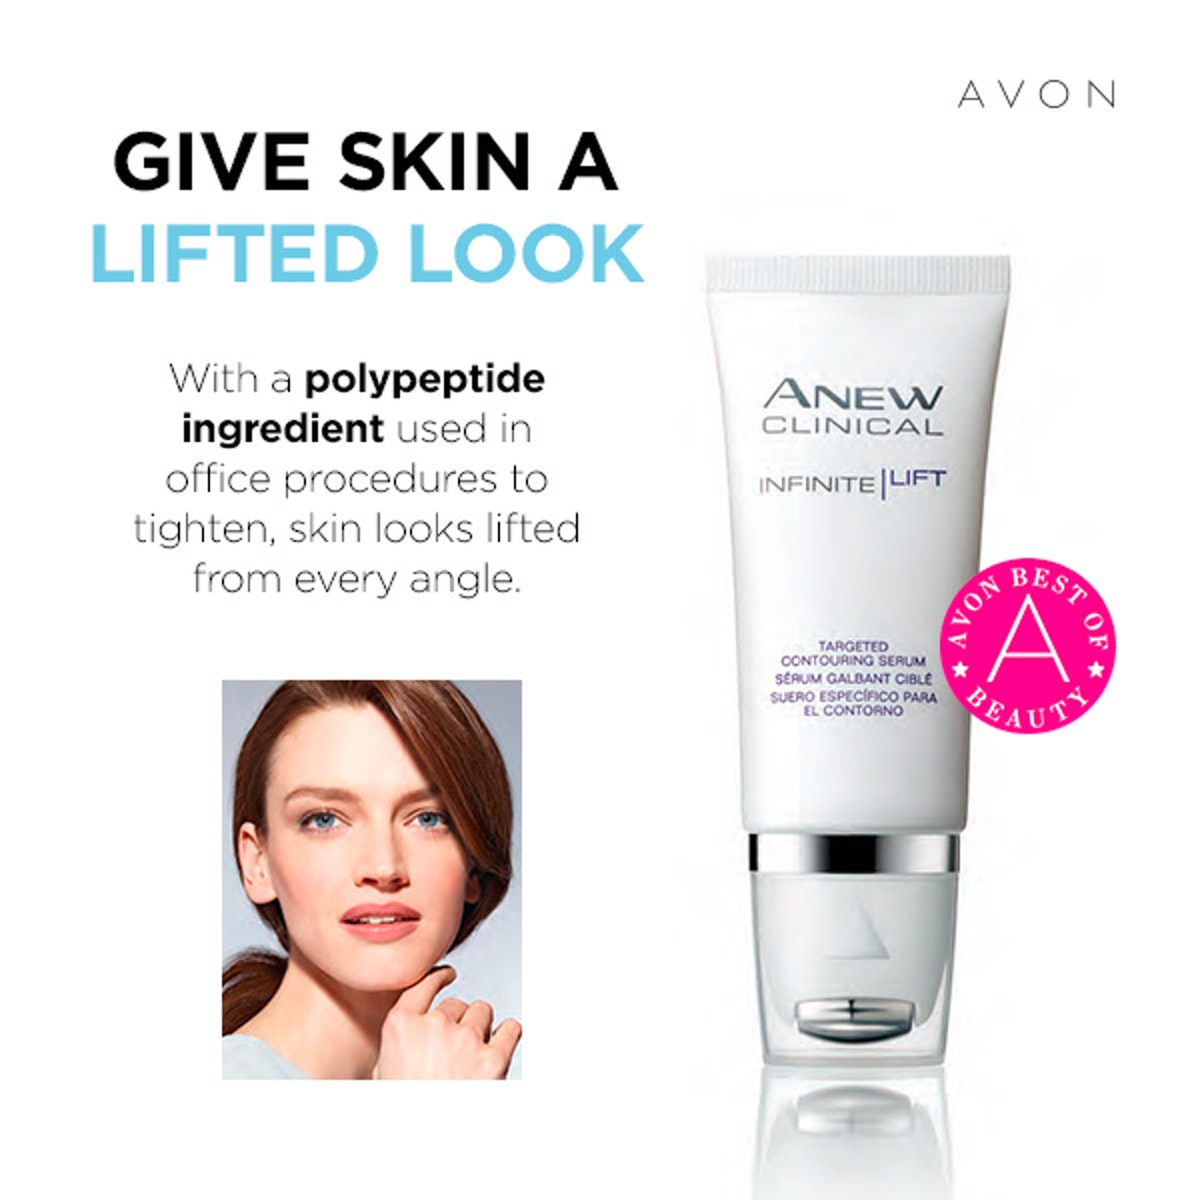 Avon Anew Taking Care Of Your Skin Journey Of An Avon Mom